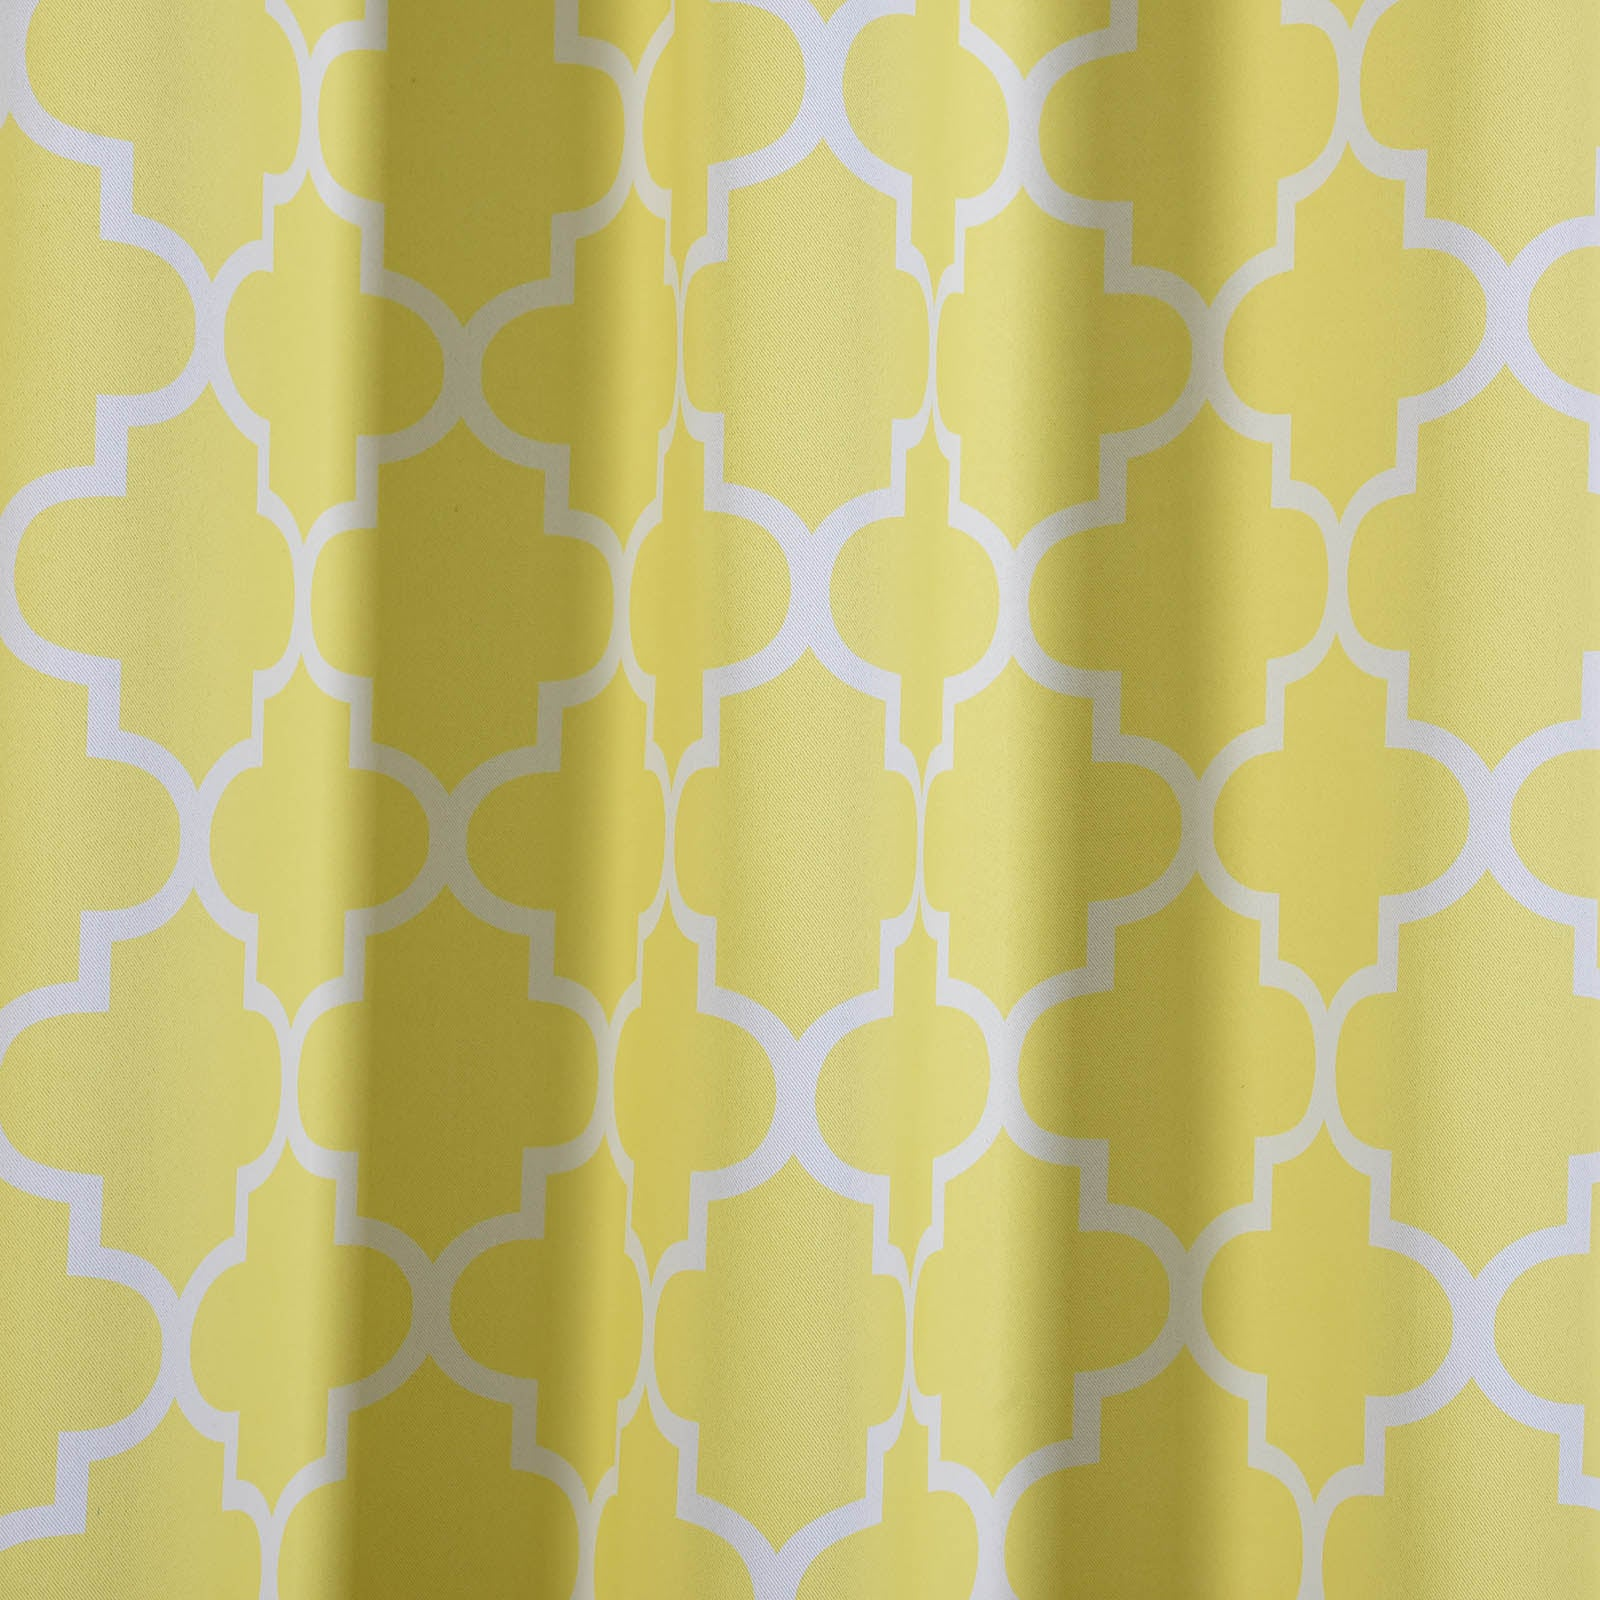 Blackout Curtains Lattice Print 52x96 White Yellow Pack Of 2 Thermal Insulated With Chrome Grommet Window Treatment Panels